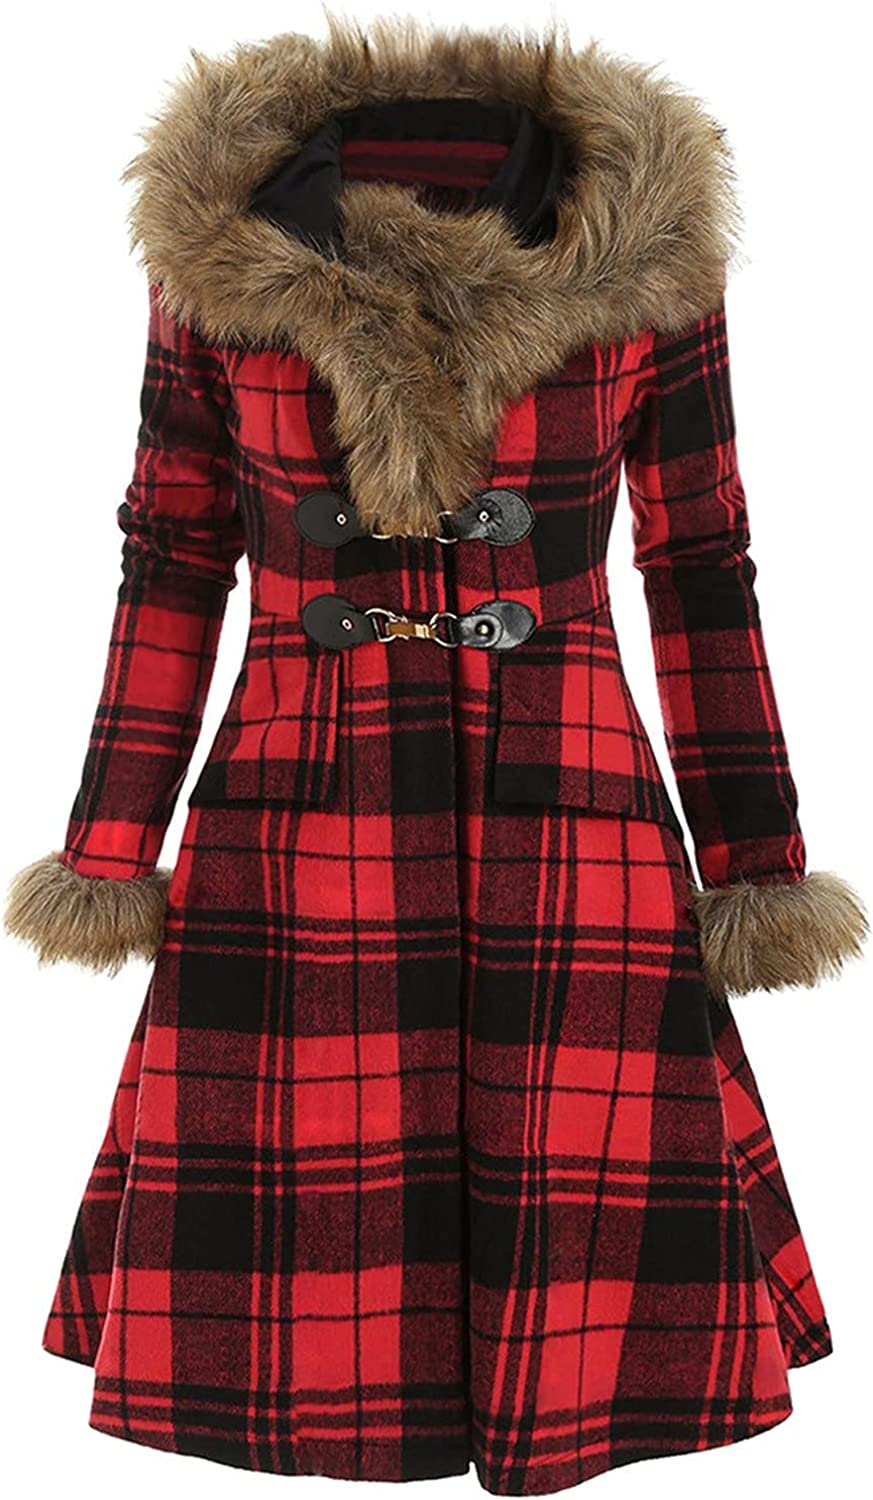 Plaid Graphic Coat Detroit Mall for Women Fashion Loose discount Tops Swe Fit Cardigan